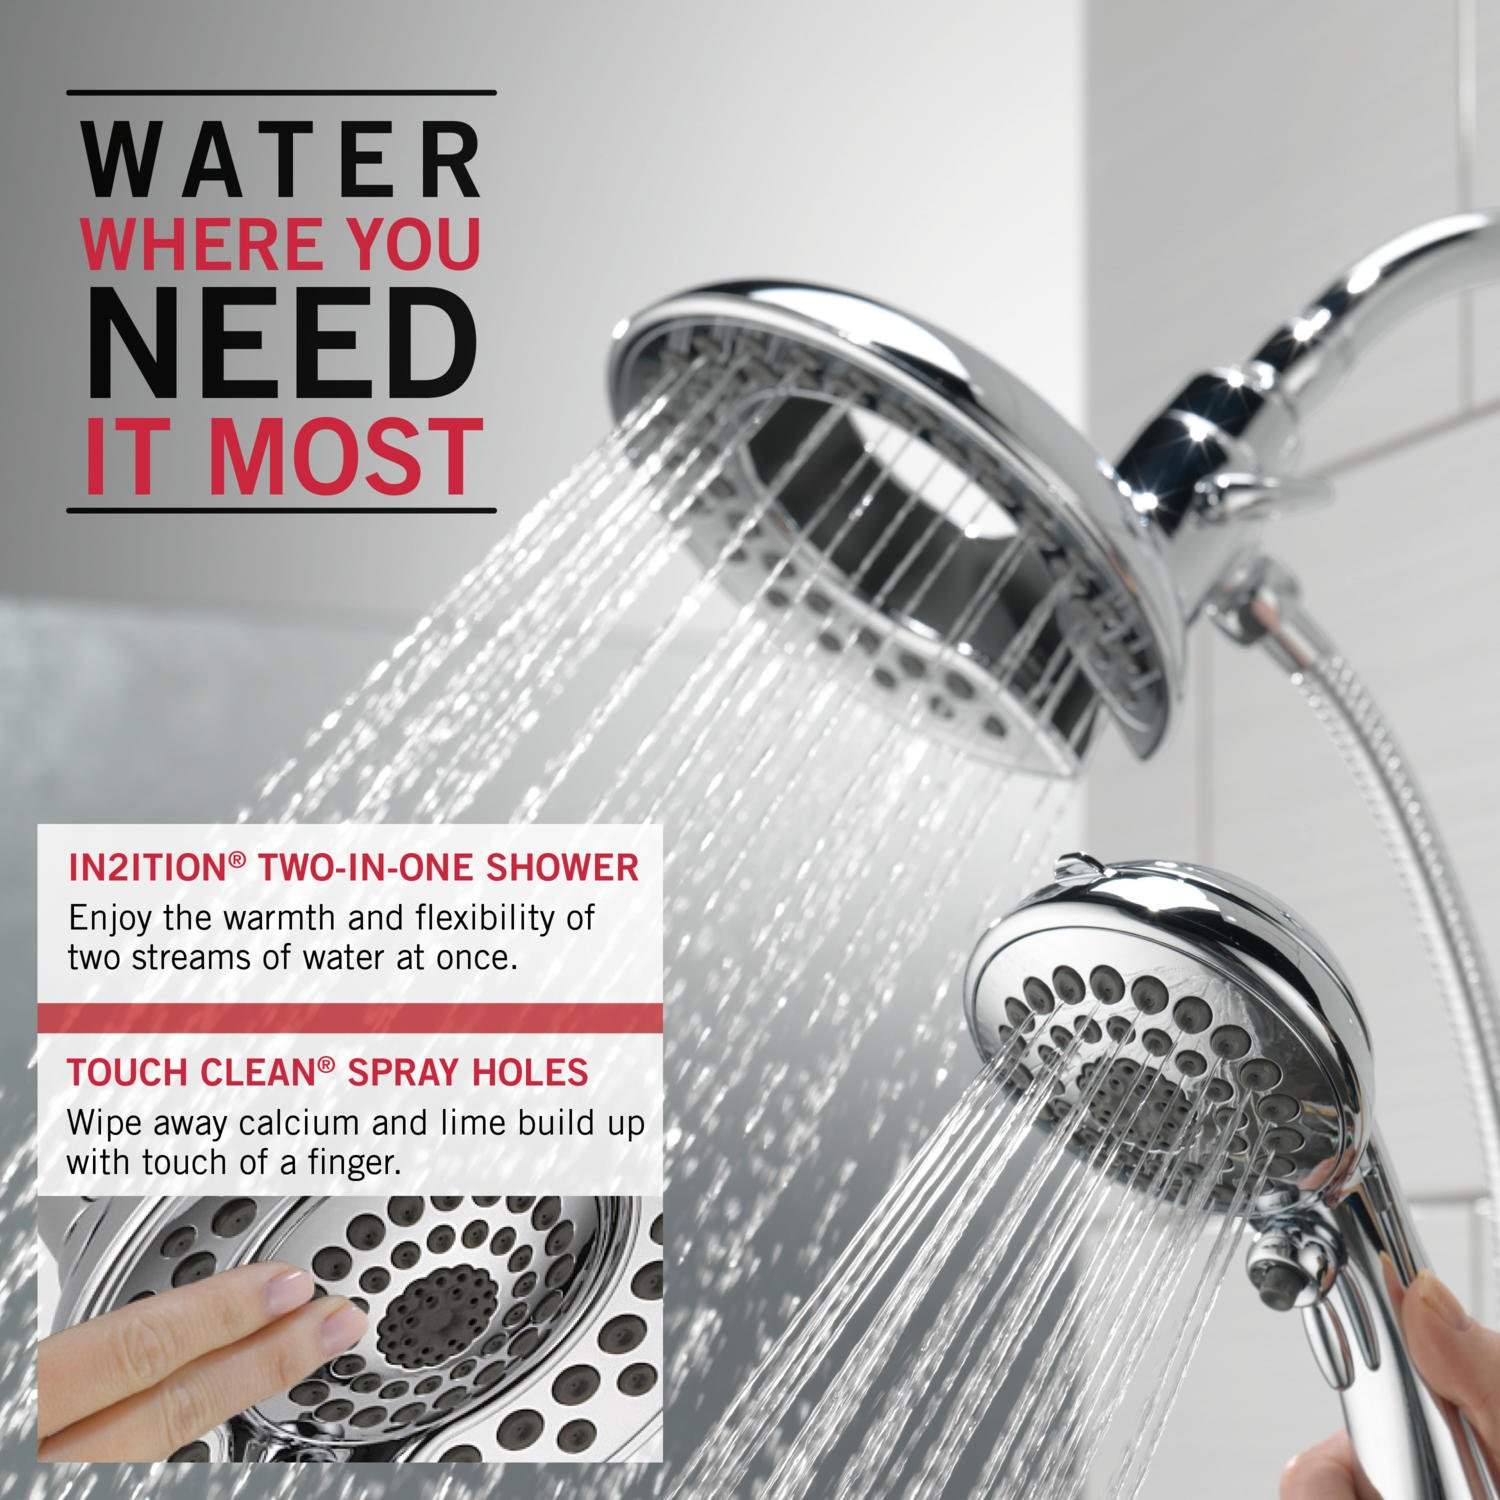 Delta 58569-SS-PK 5-Spray Touch Clean In2ition 2-in-1 Hand Held Shower Head with Hose, Stainless by DELTA FAUCET (Image #3)